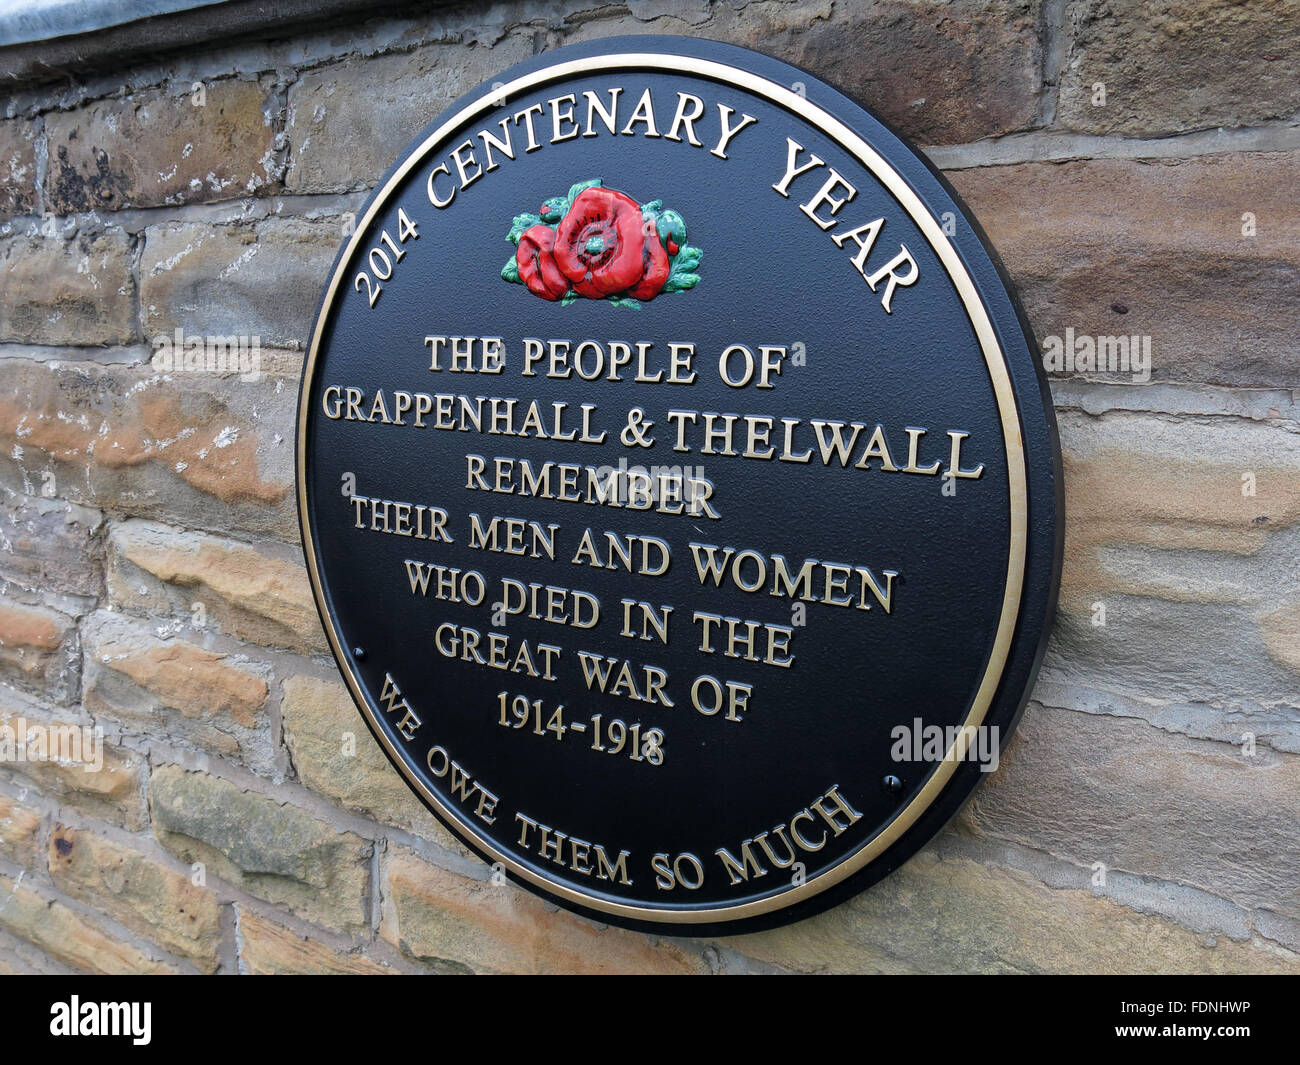 Great,War,1914-1918,Cheshire,England,UK,1914,1918,people,remember,men,women,who,died,we,owe,them,so,much,black,wall,on,Methodist,Church,Knutsford,Rd,Road,2014,Centenary,Year,Plaque,Grappenhall & Thelwall,1914,Centenary,Year,Plaque,Great War,on a wall,GoTonySmith,@HotpixUK,Buy Pictures of,Buy Images Of,Images of,Stock Images